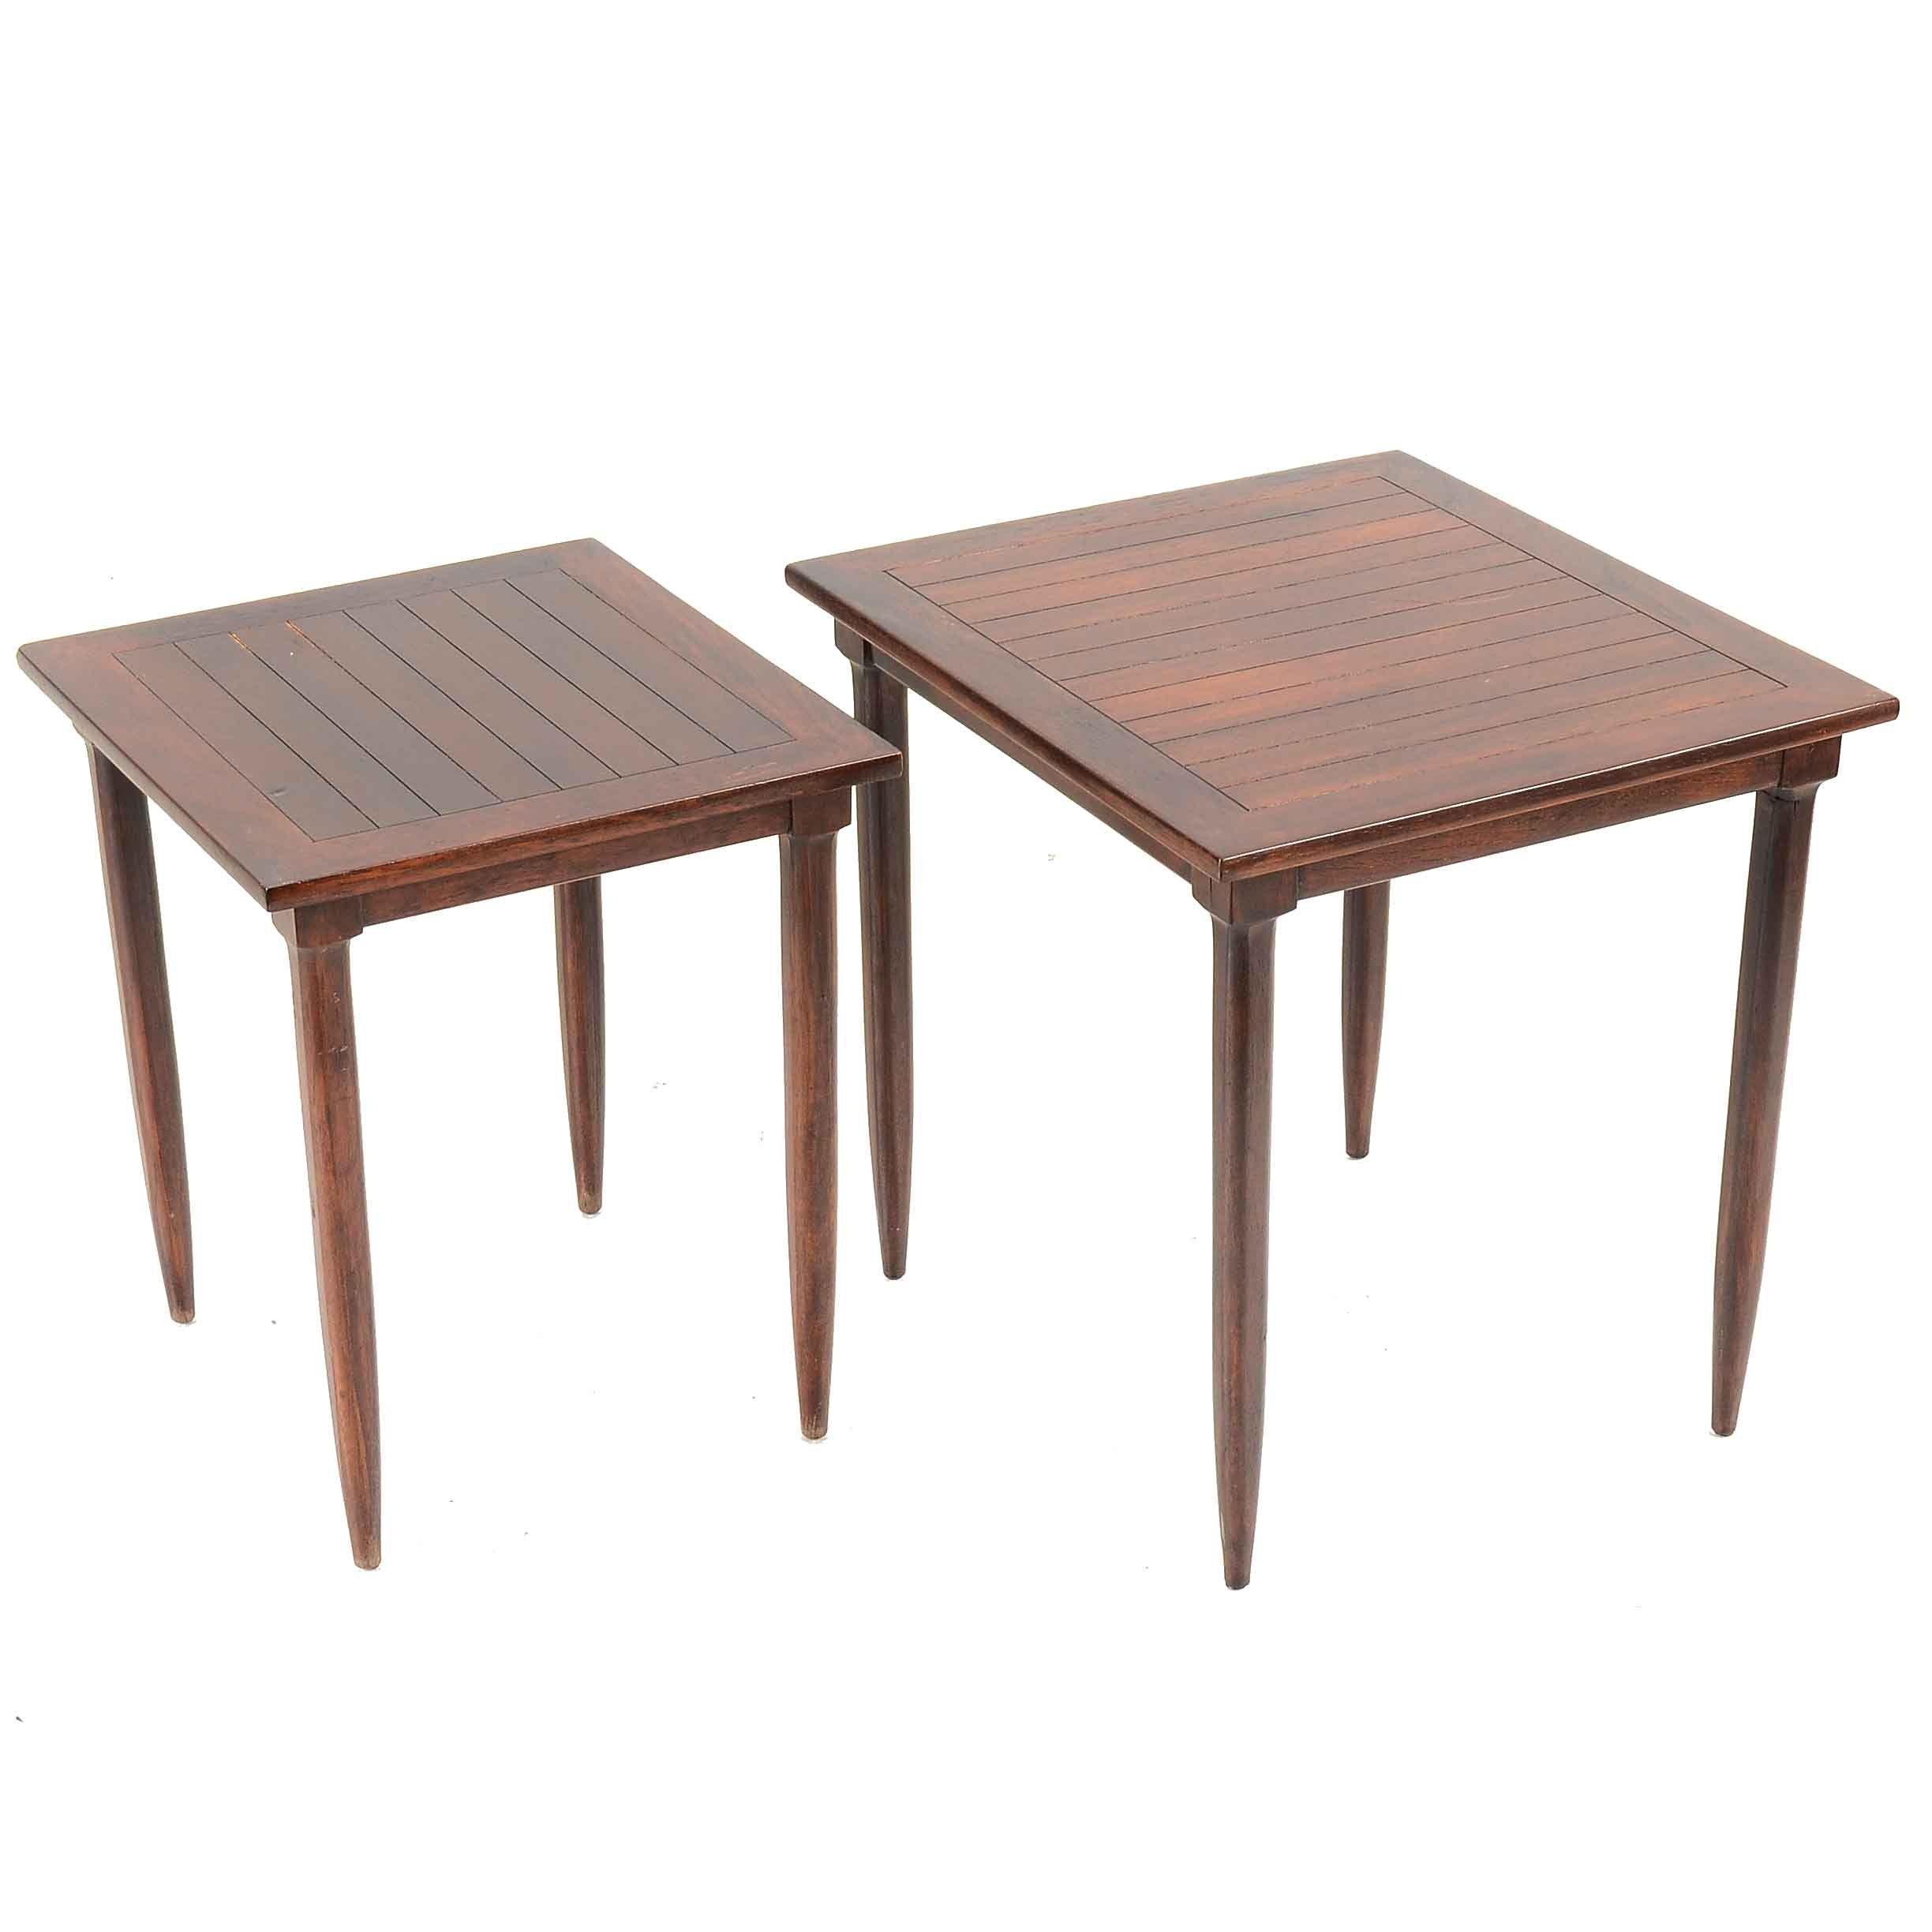 Two Mid Century Nesting Tables by Tomlinson